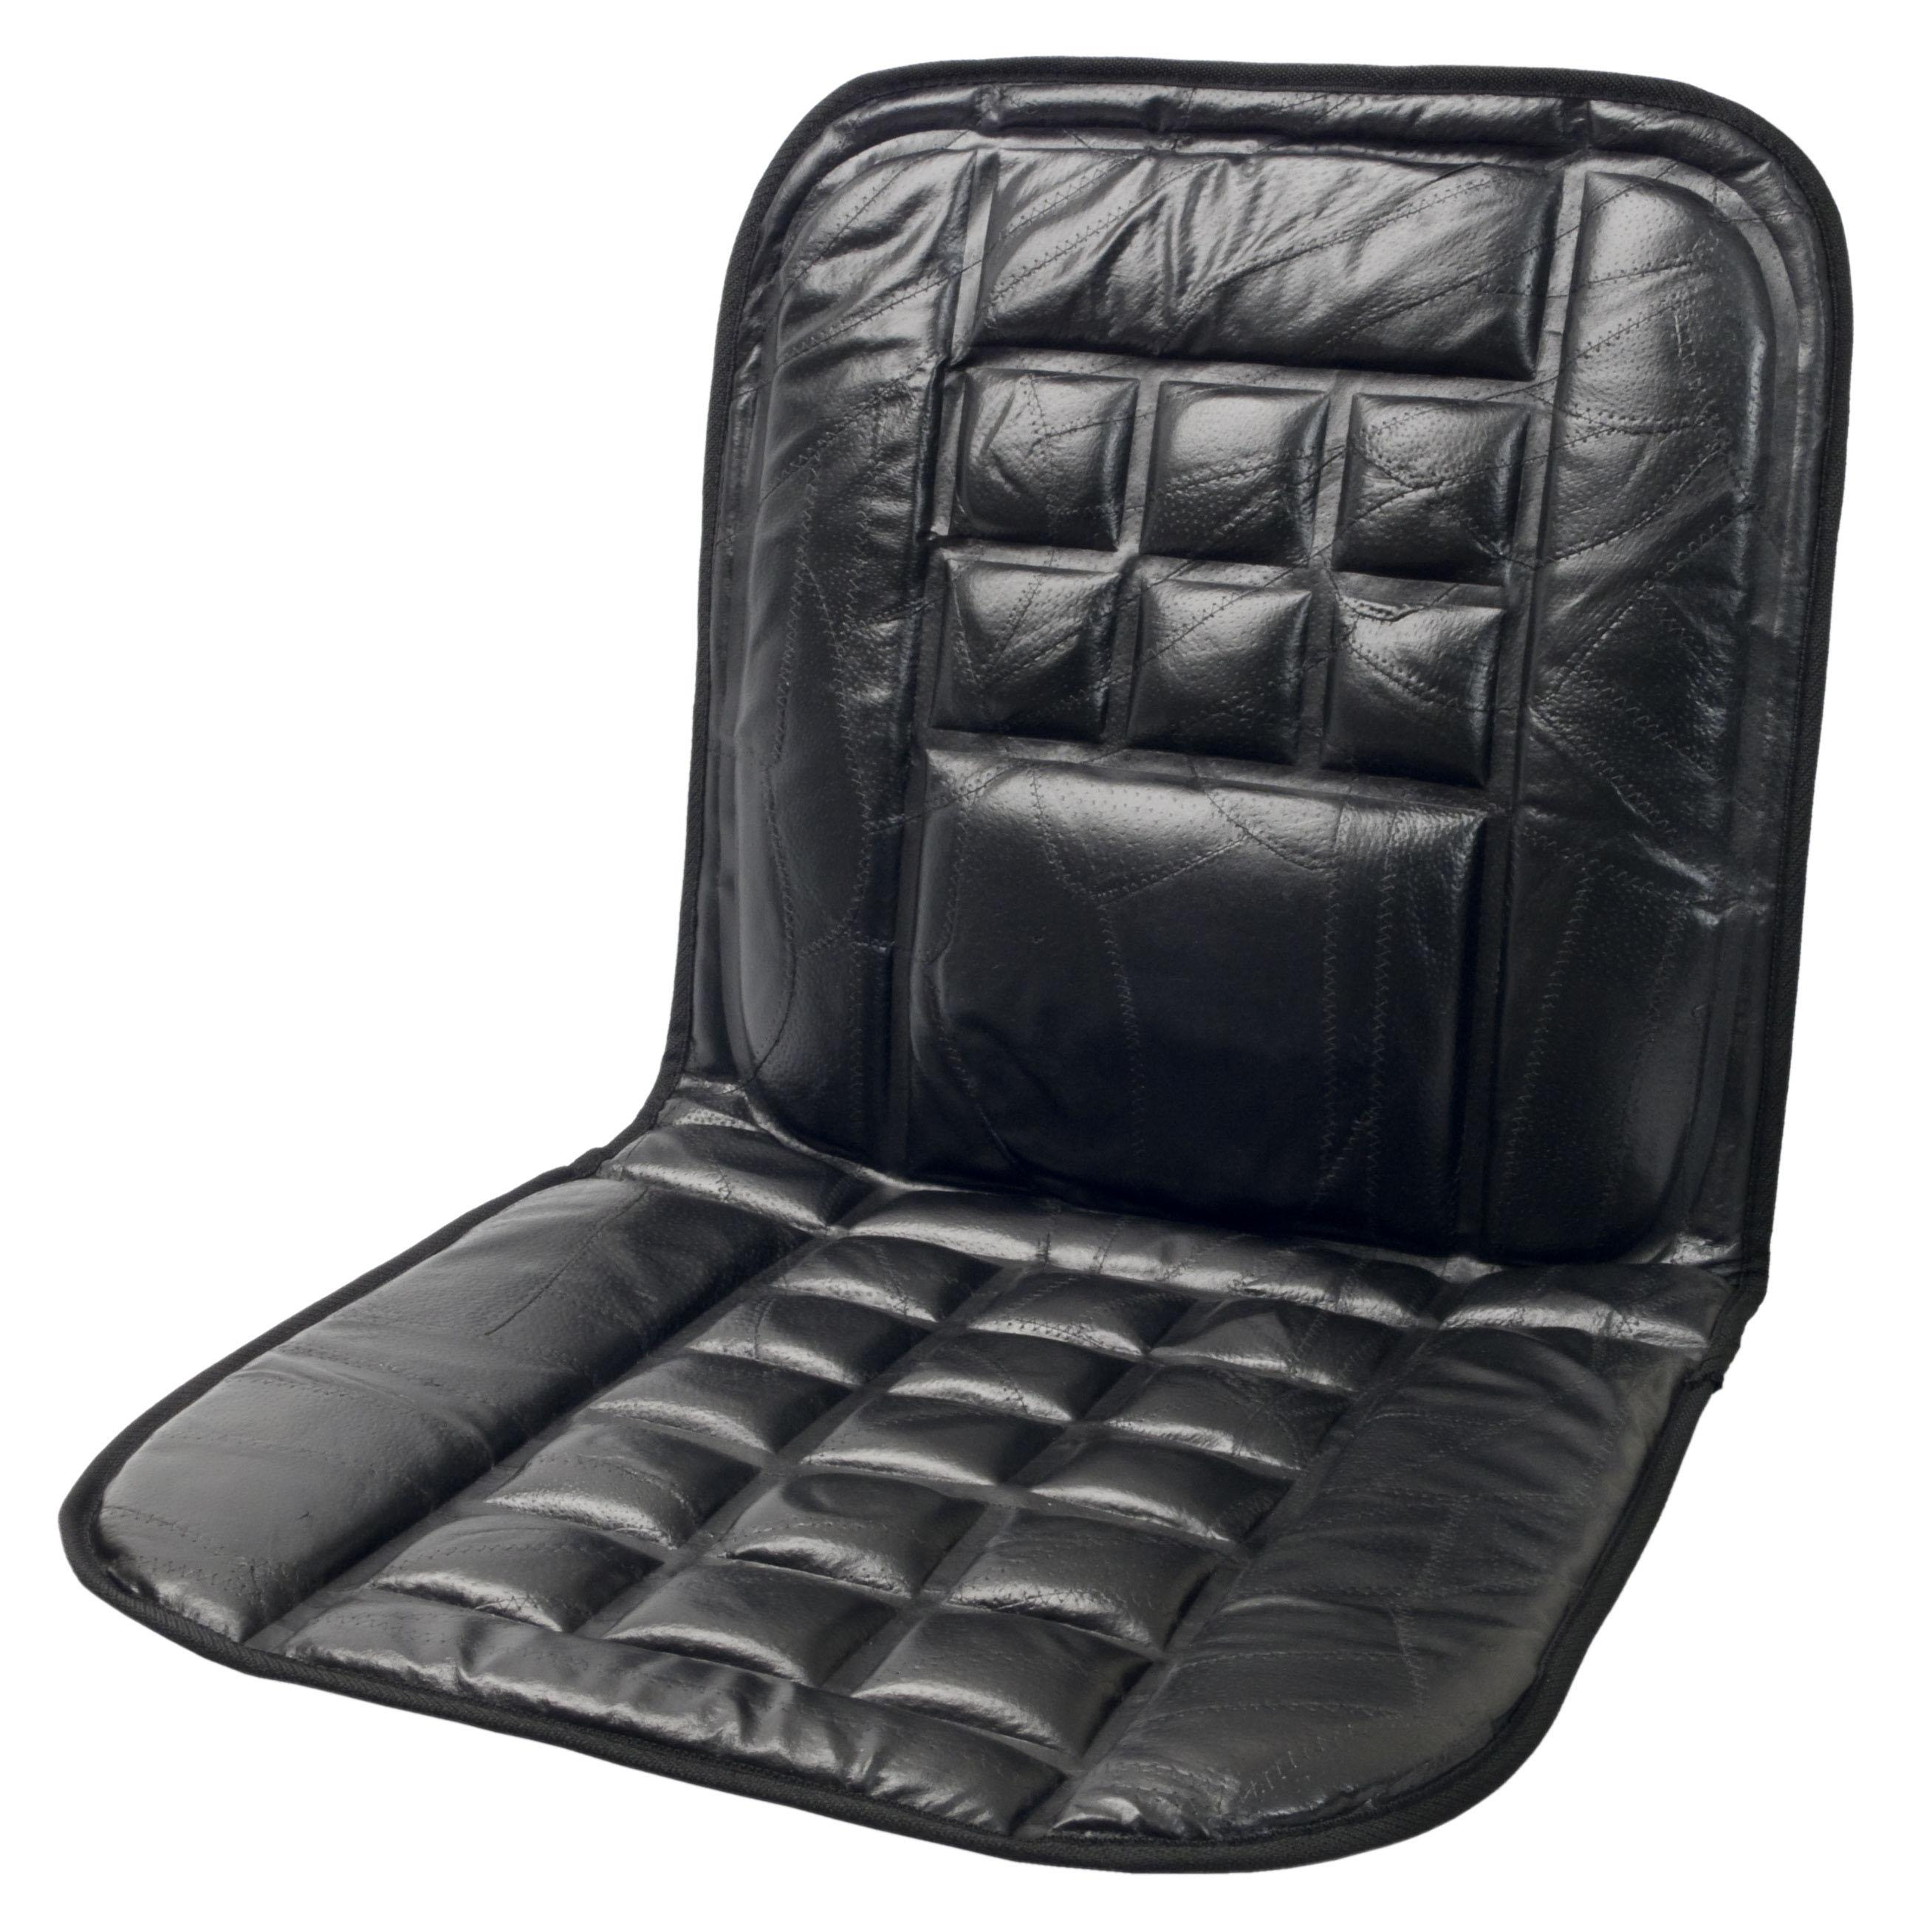 Wagan In9615 Leather Lumbar Support Cushion